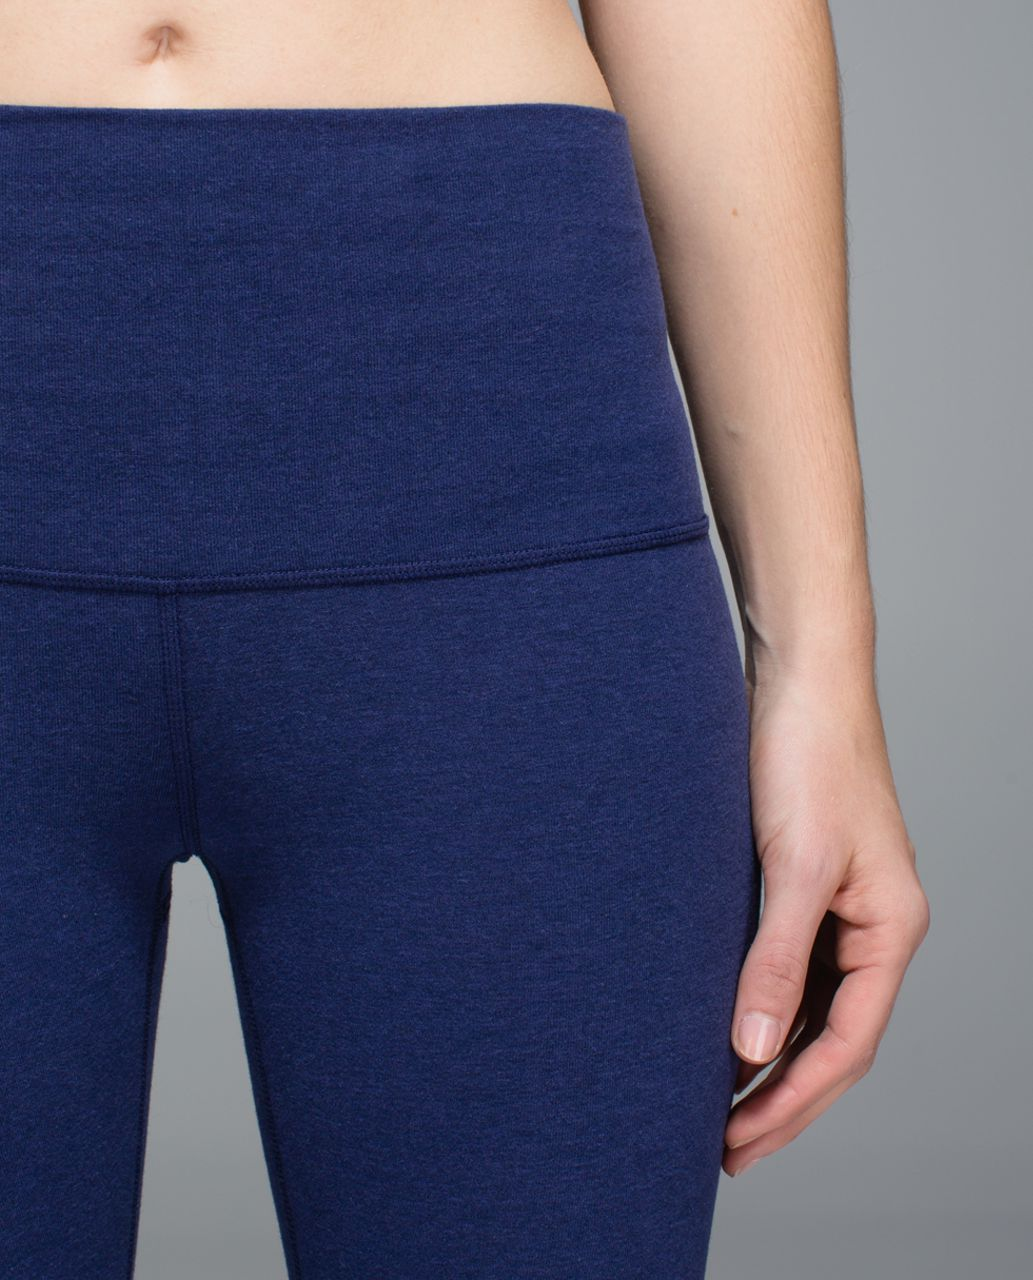 Lululemon Wunder Under Crop *Cotton (Roll Down) - Heathered Denim Majestic